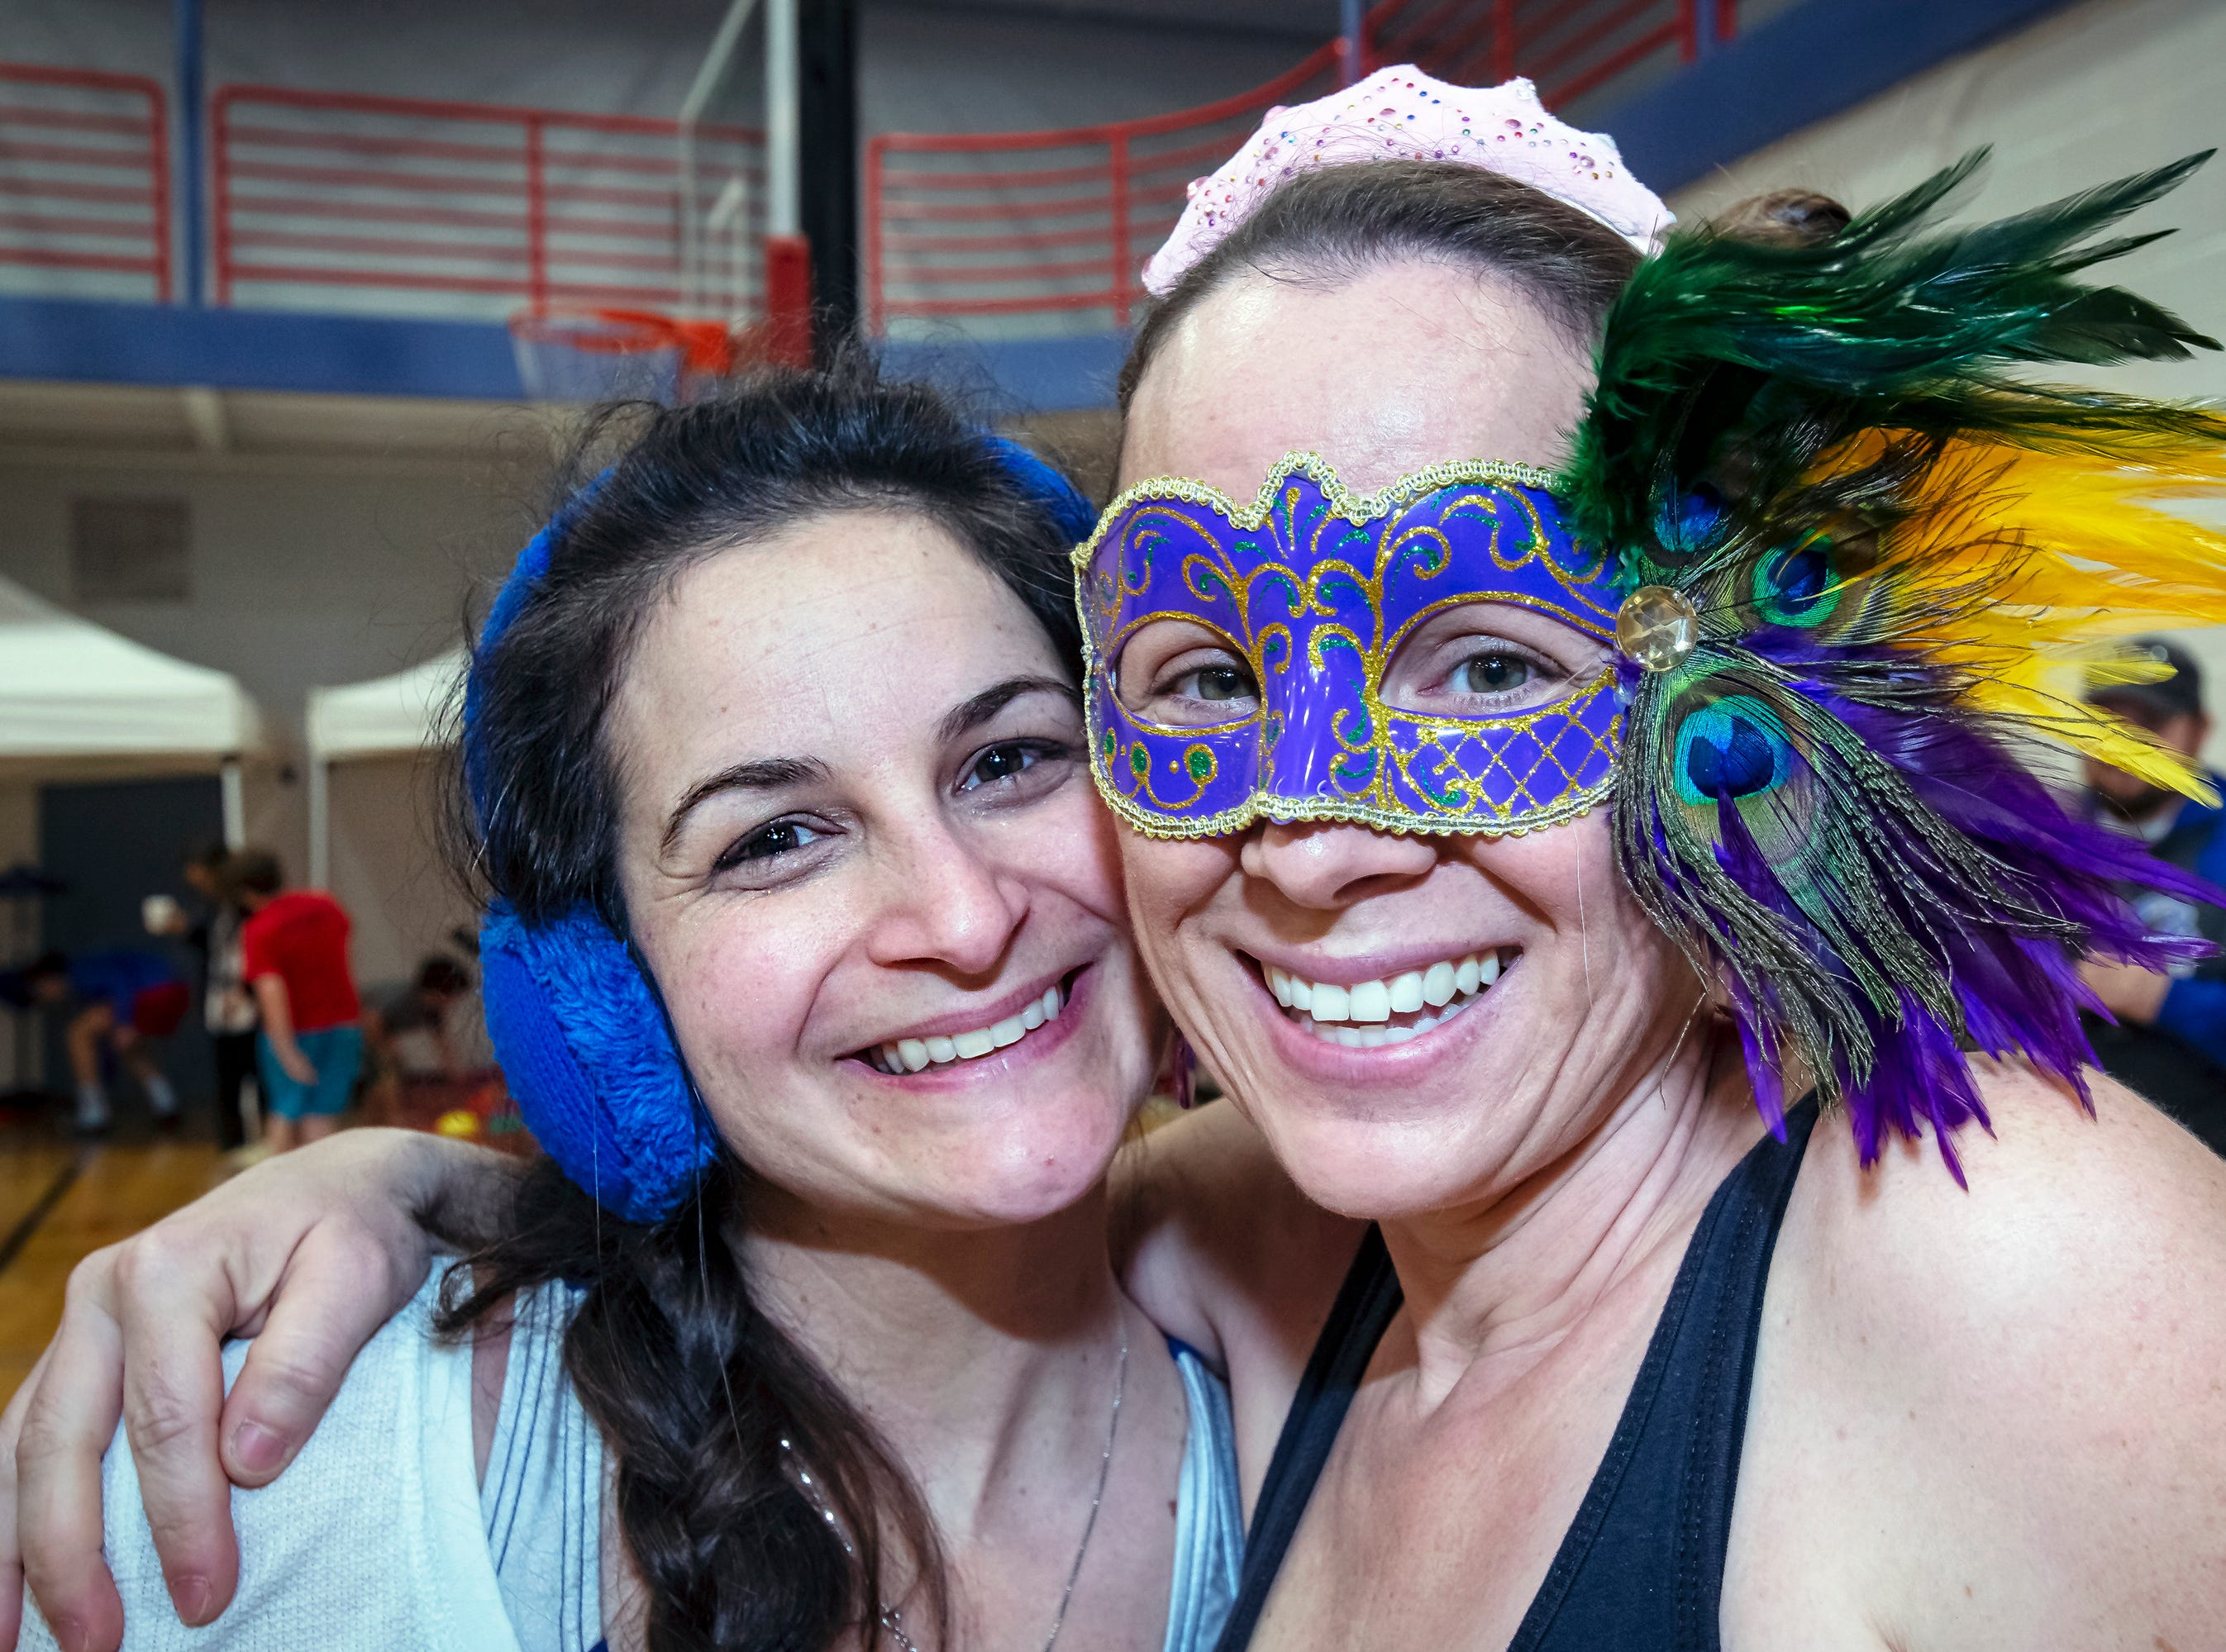 Christa Bradford and Trish Mathisen came dressed for the 17th annual Polar Bear Plunge held at SportsCom on Saturday, Jan. 5.